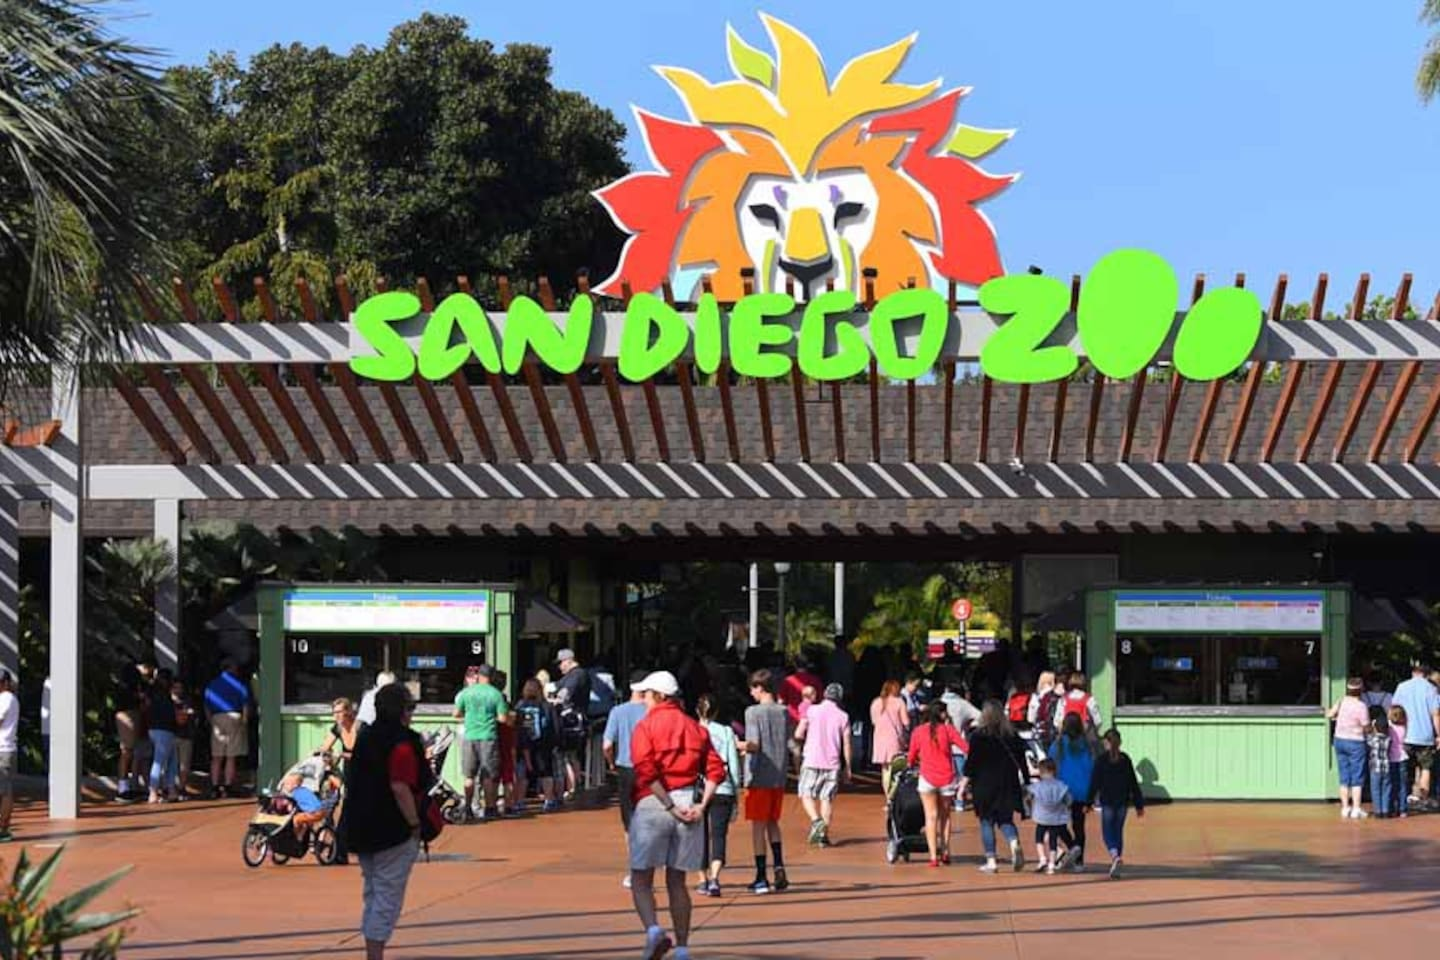 WORLD FAMOUS SAN DIEGO ZOO